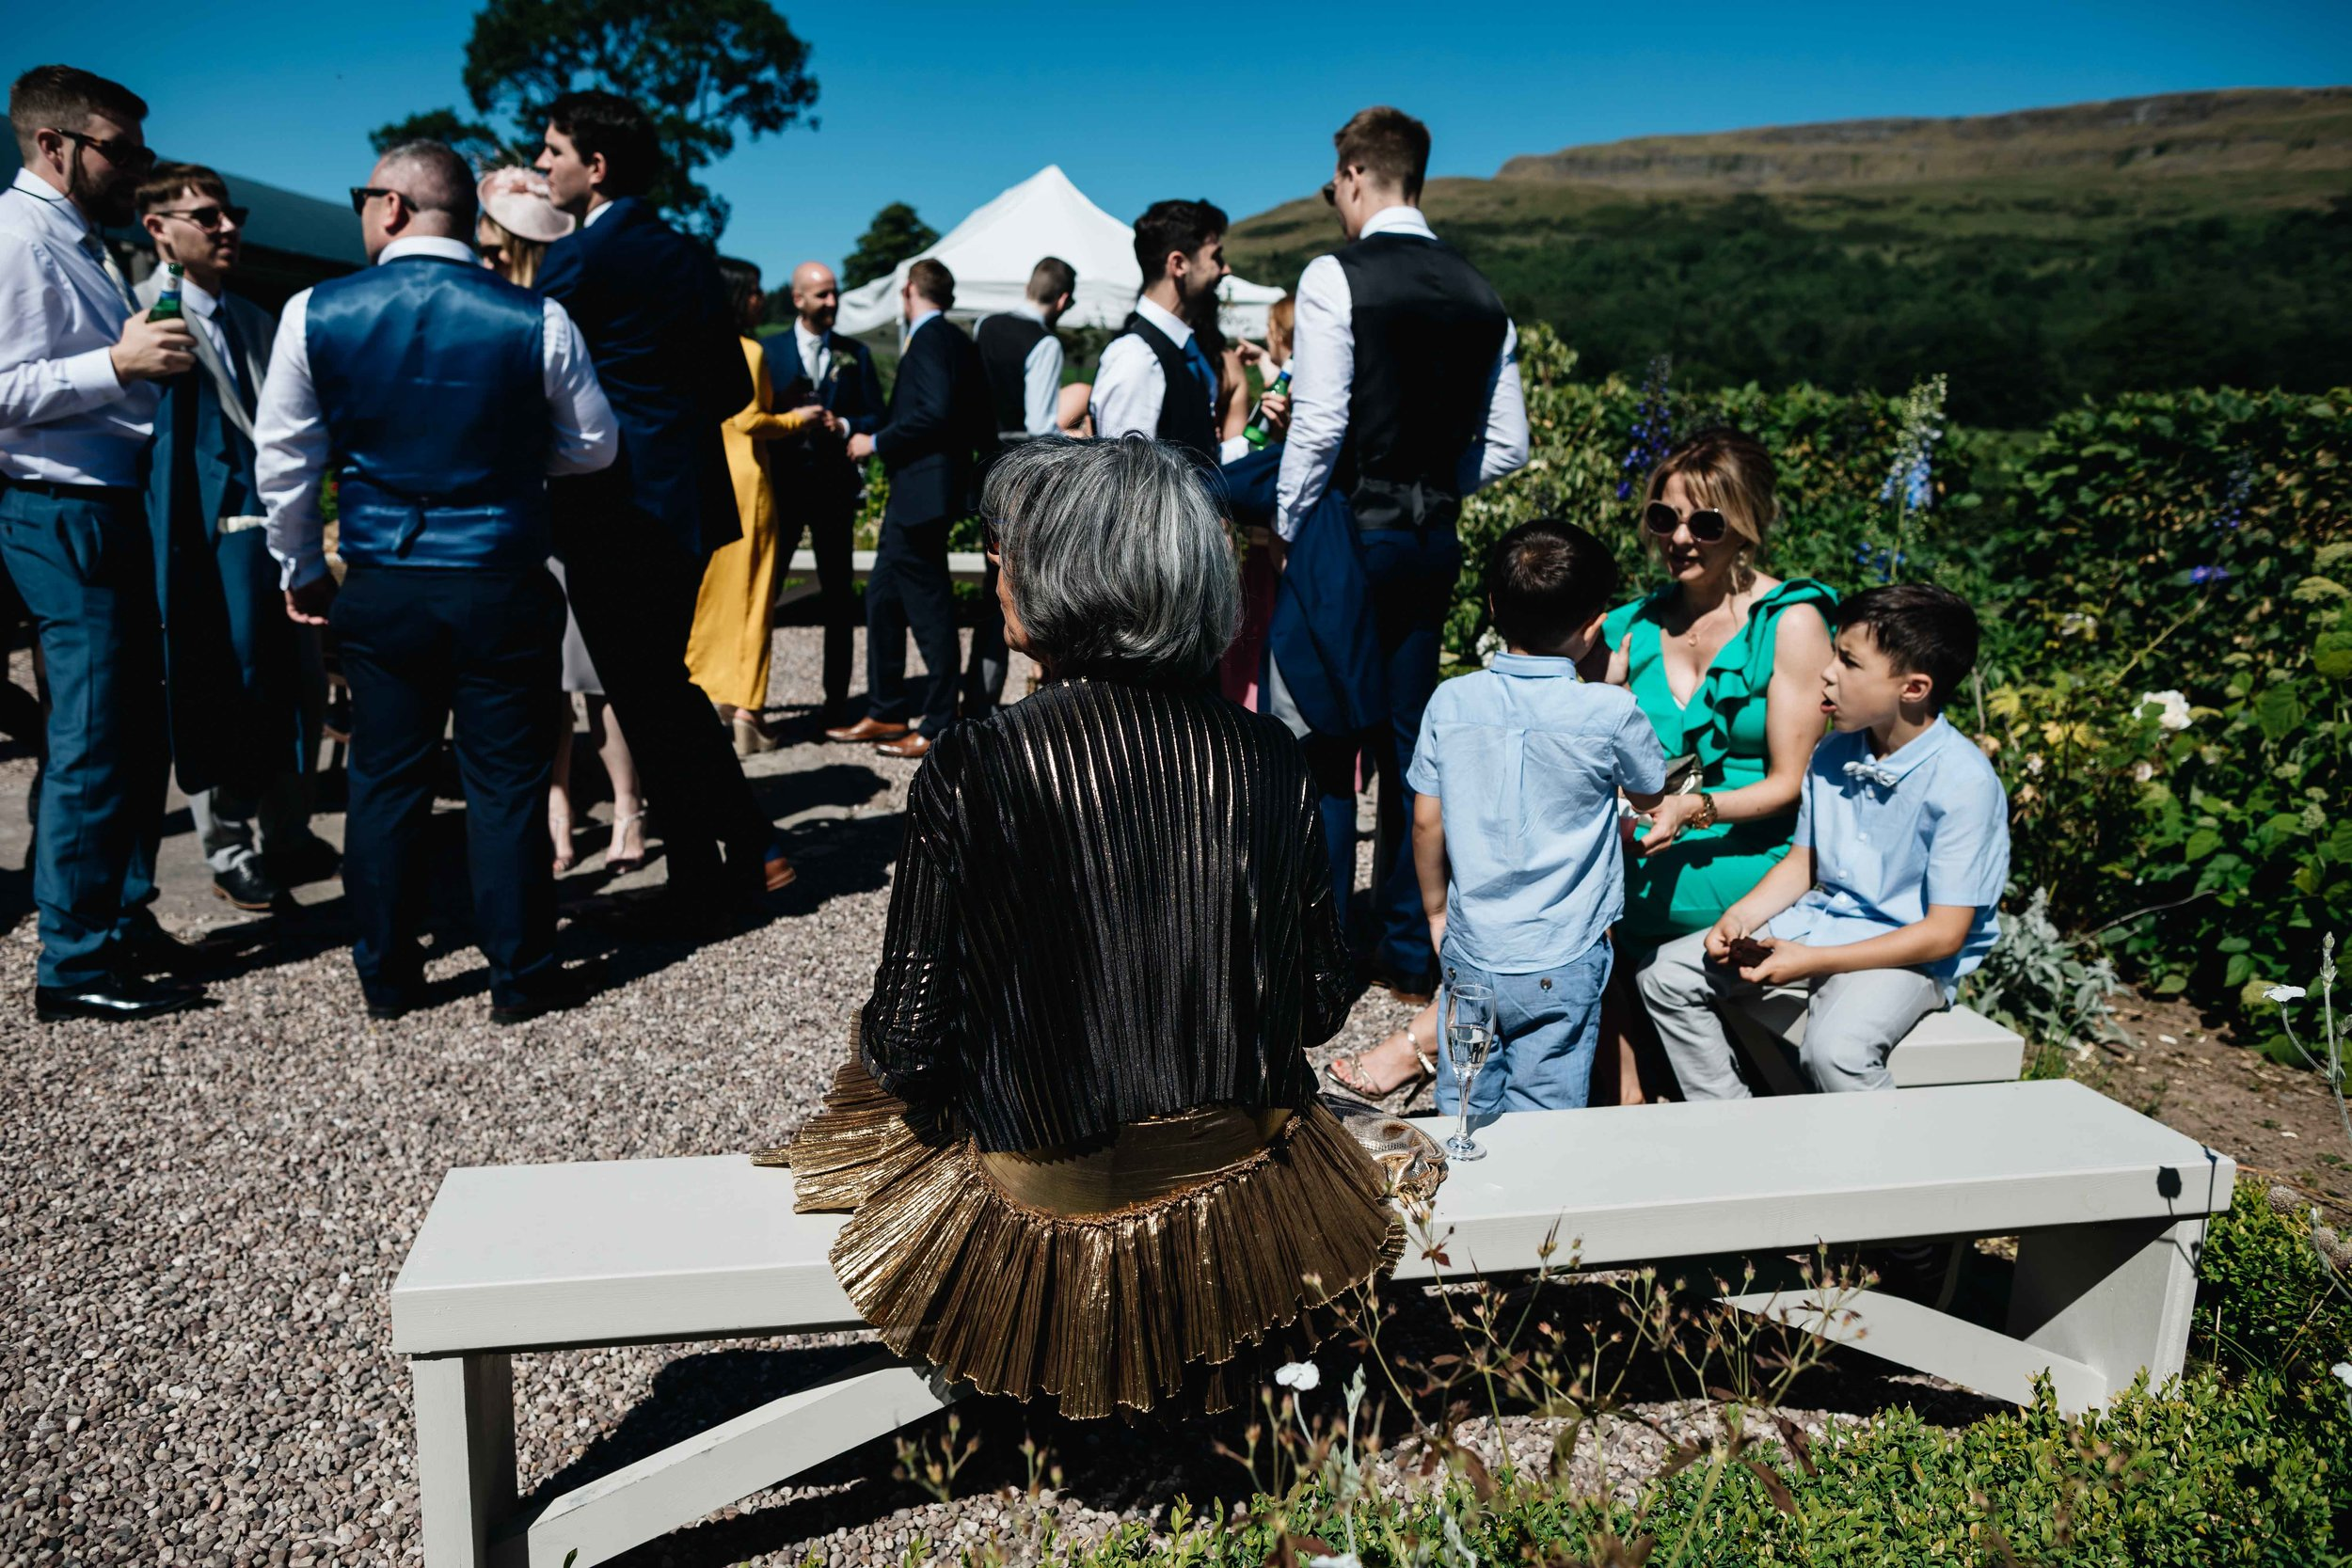 wedding guest with gold skirt sits on bench